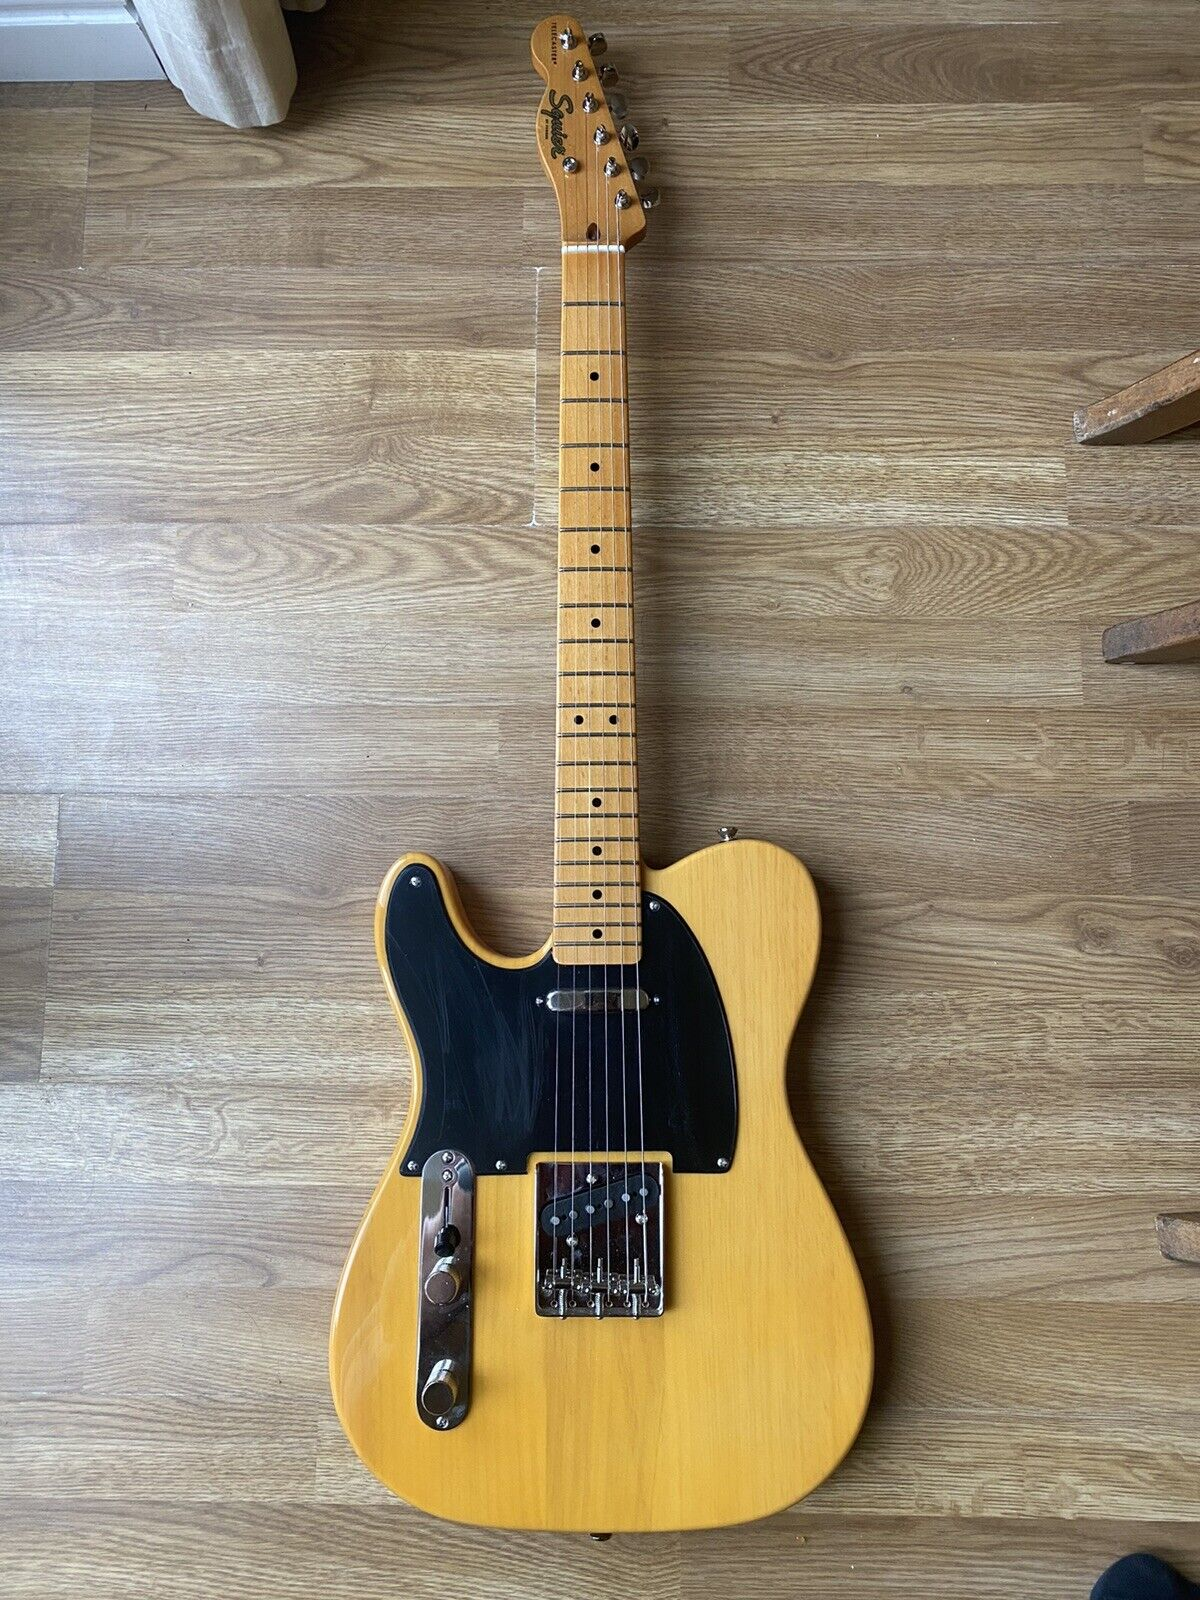 This pre-owned left handed Fender Telecaster guitar is for sale - Left Handed Squire by Fender Classic Vibe 50s Telecaster Butterscotch Blonde